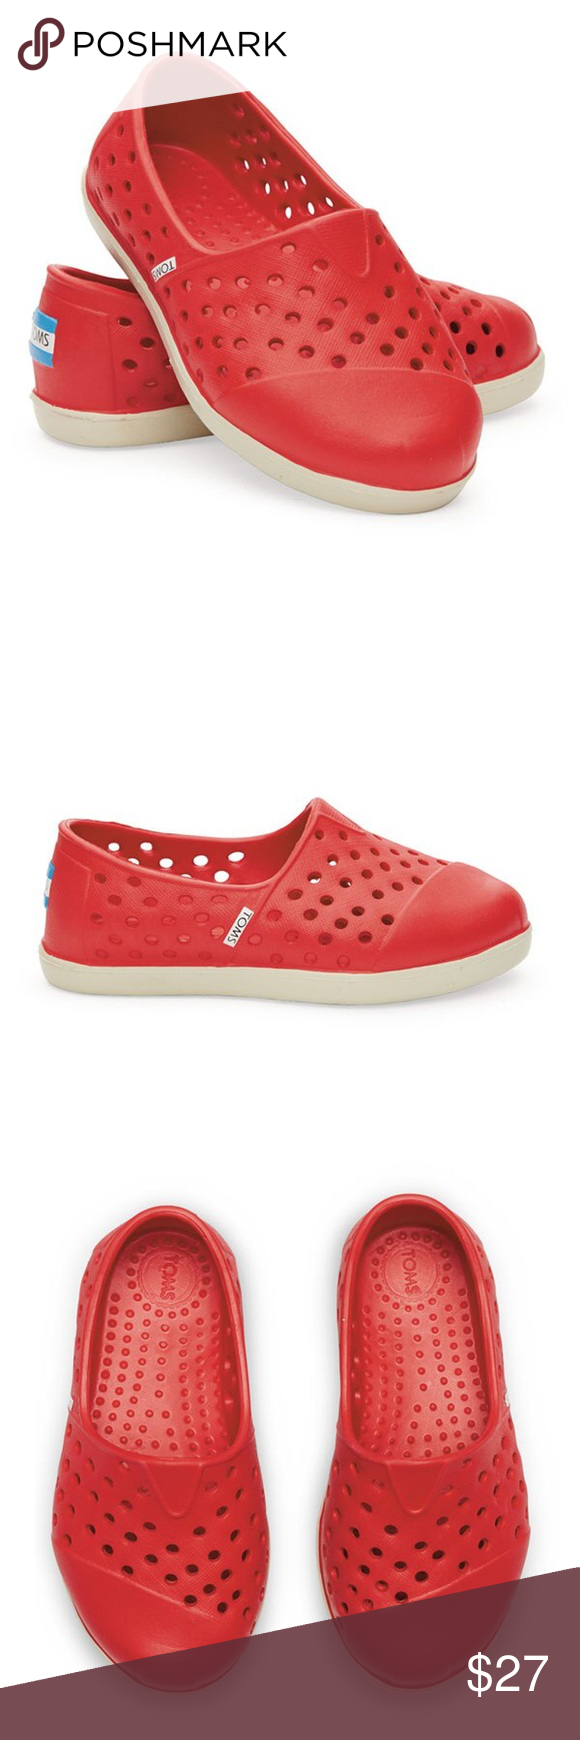 5f8fd9097be 👶🏼NWT Toms Romper Waterproof Slip-on Shoes Red Great toddler waterproof  slip-on Toms (like Natives.) Cute red and white. Great for boys or girls.  TOMS ...